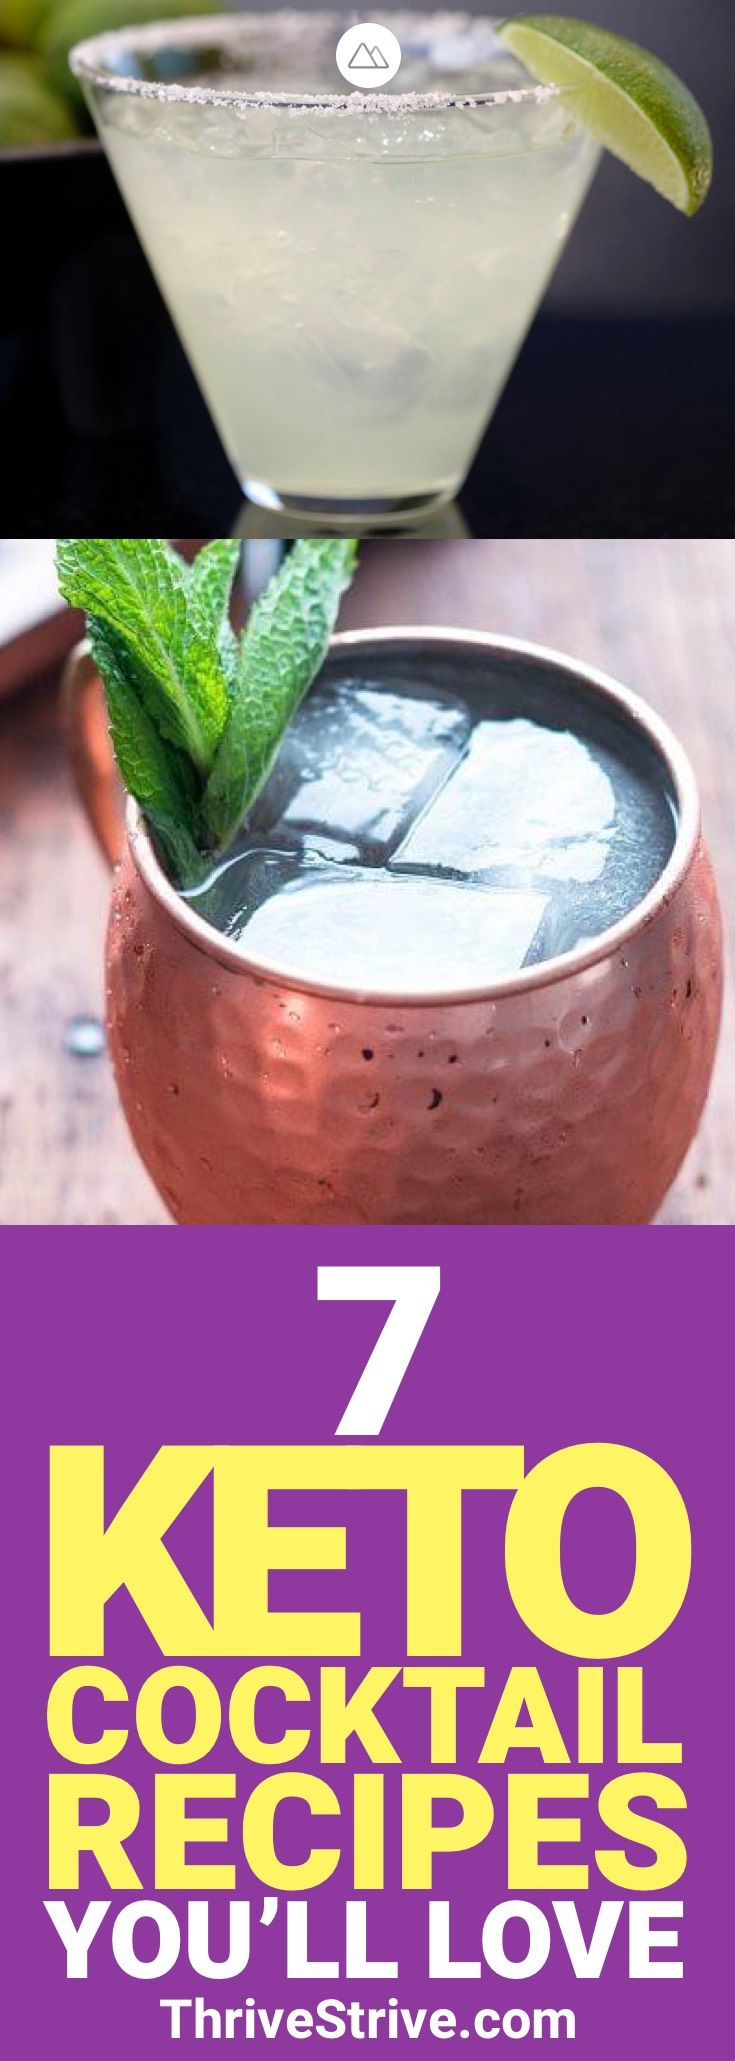 When you're on the ketogenic diet, you shouldn't be afraid to drink and have fun like you used to. These 7 keto alcohol recipes are going to allow you to have fun while you're in ketosis.